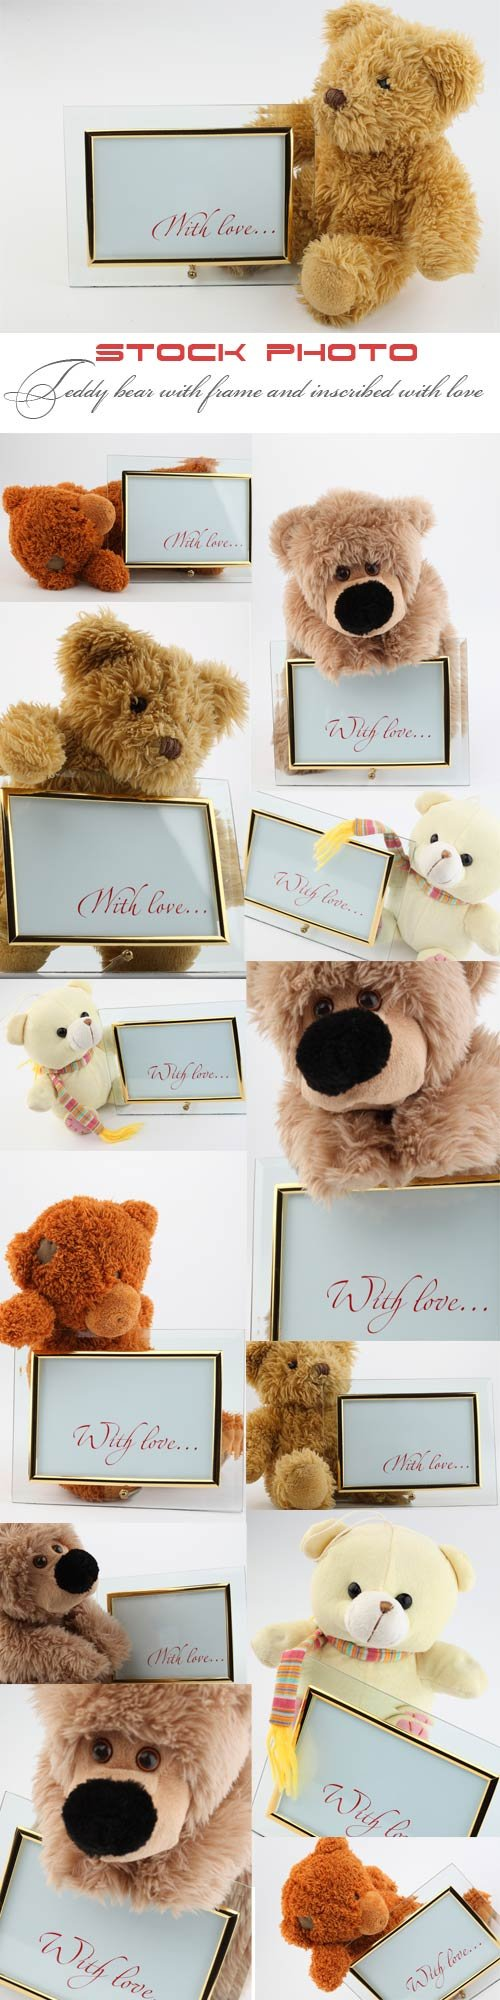 Teddy bear with frame and inscribed with love